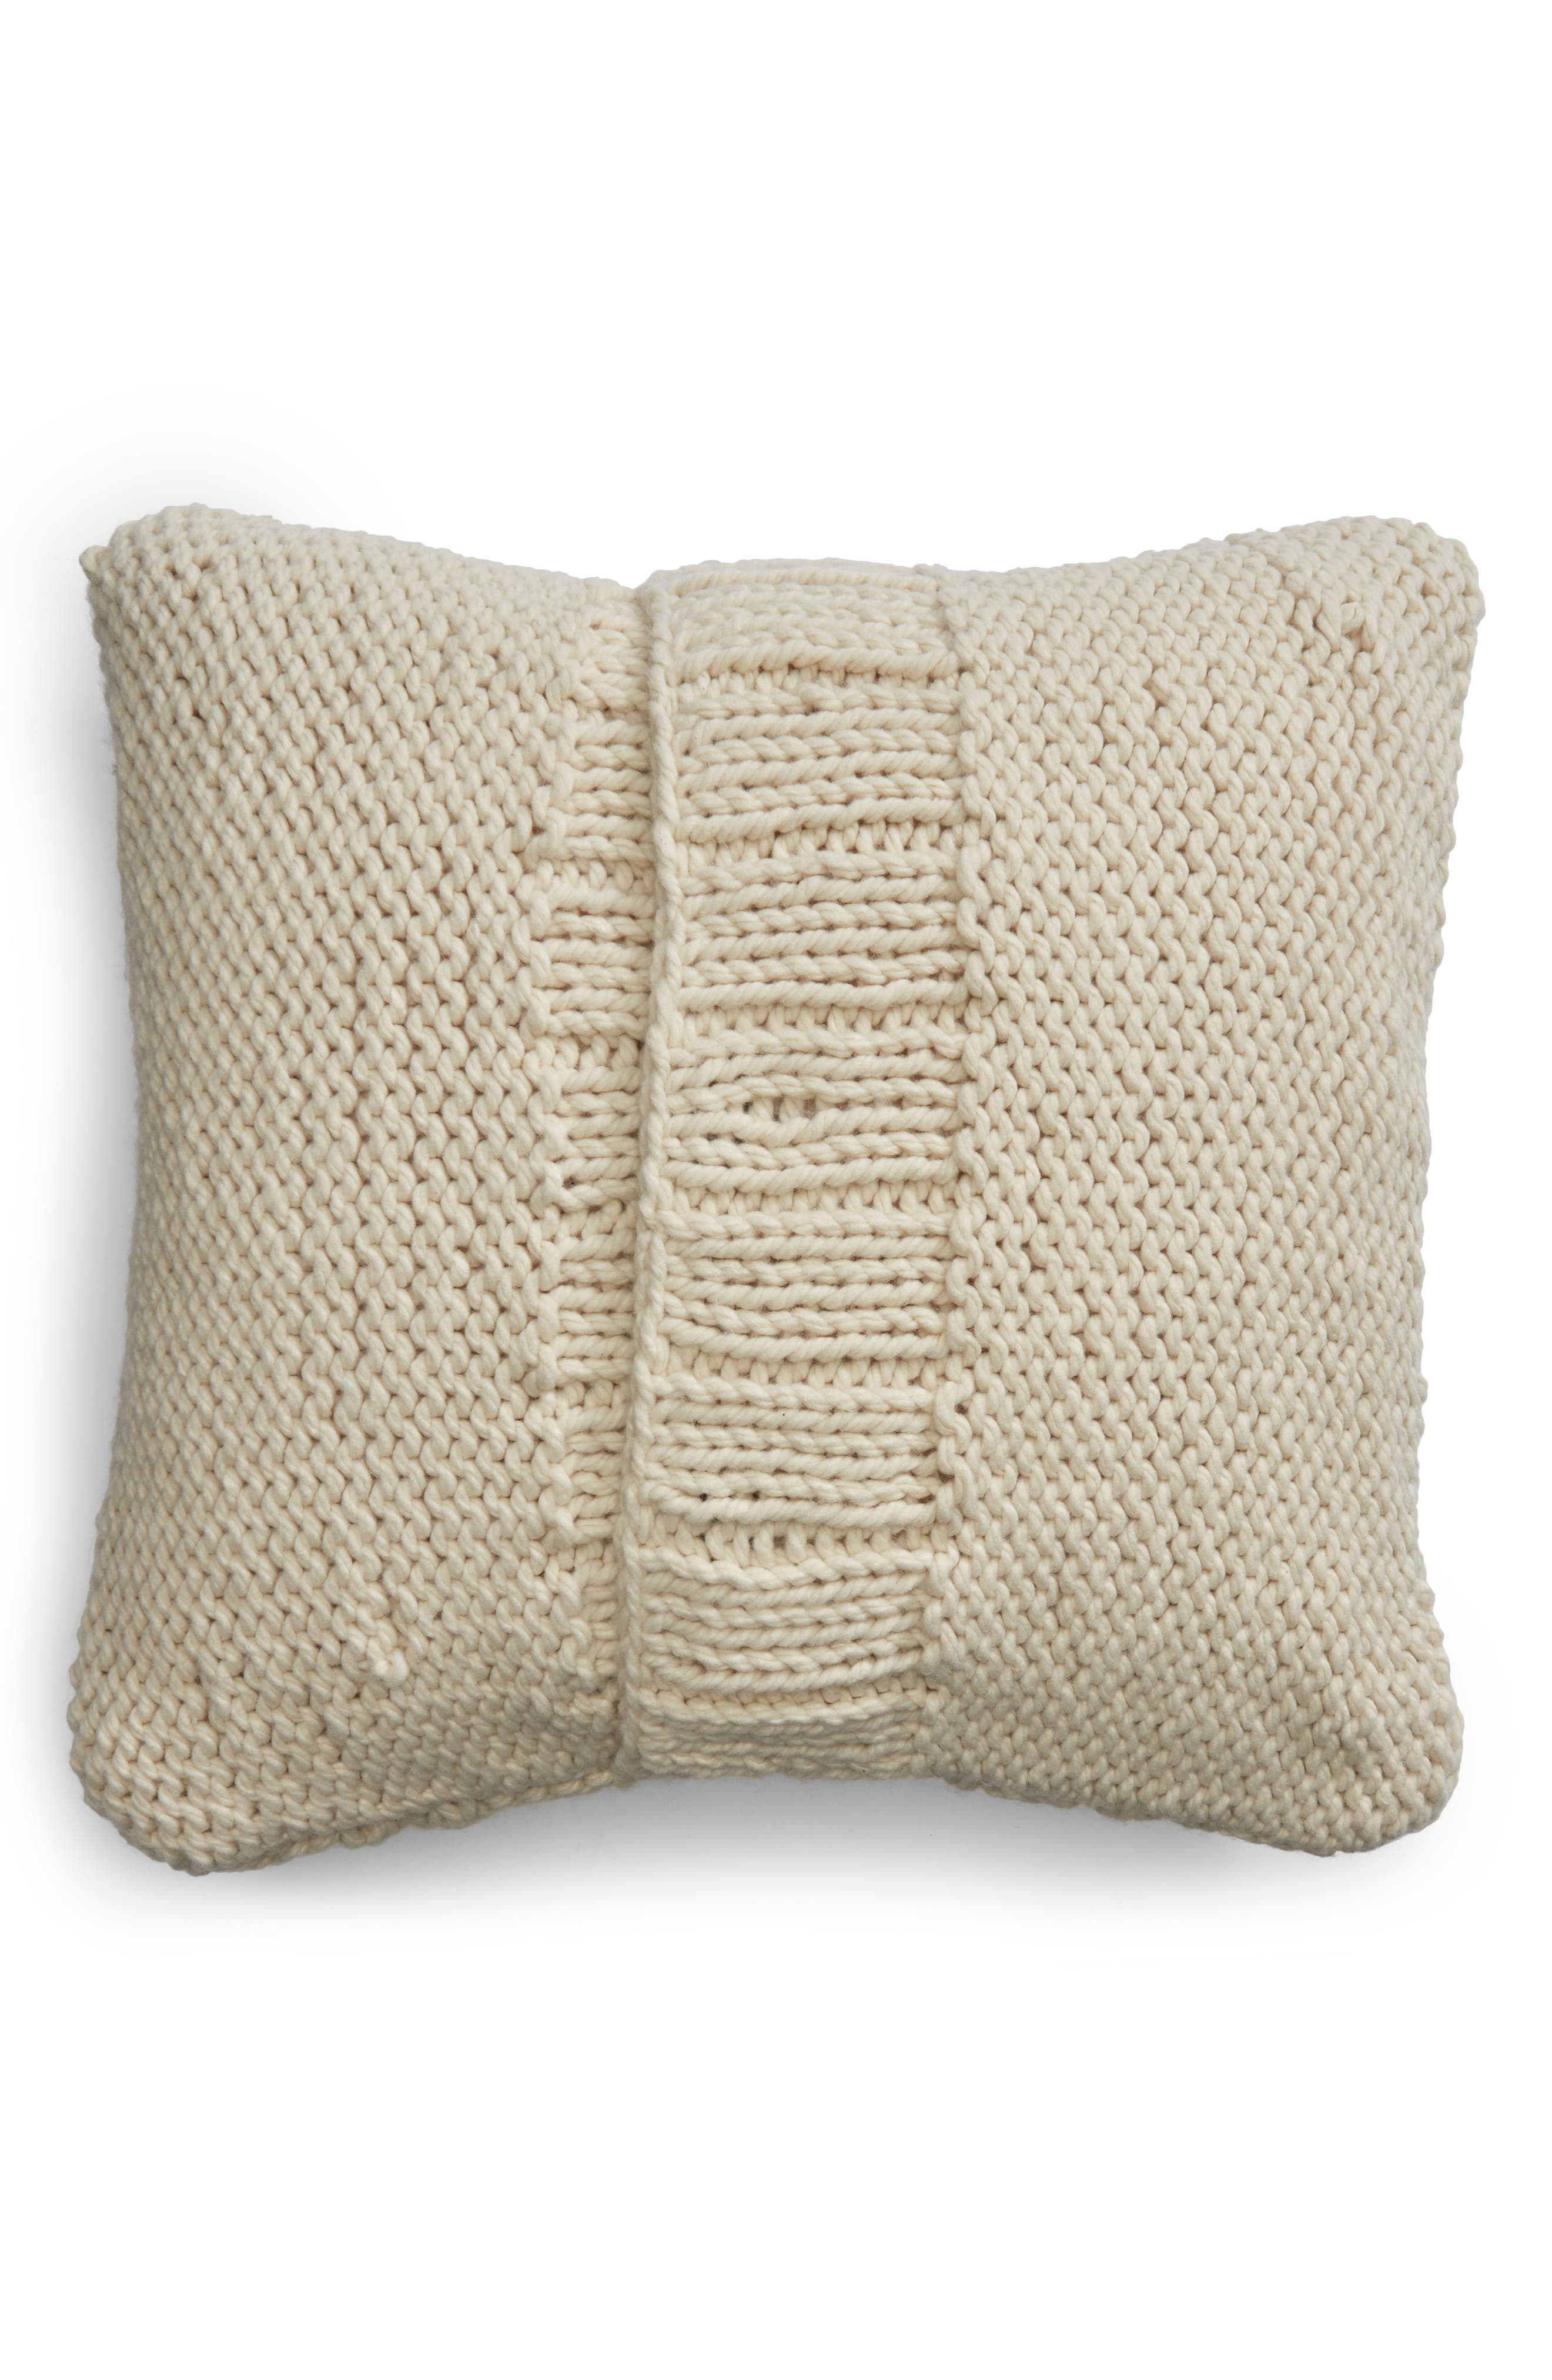 Chunky Cable Knit Accent Pillow,                             Alternate thumbnail 2, color,                             IVORY DOVE